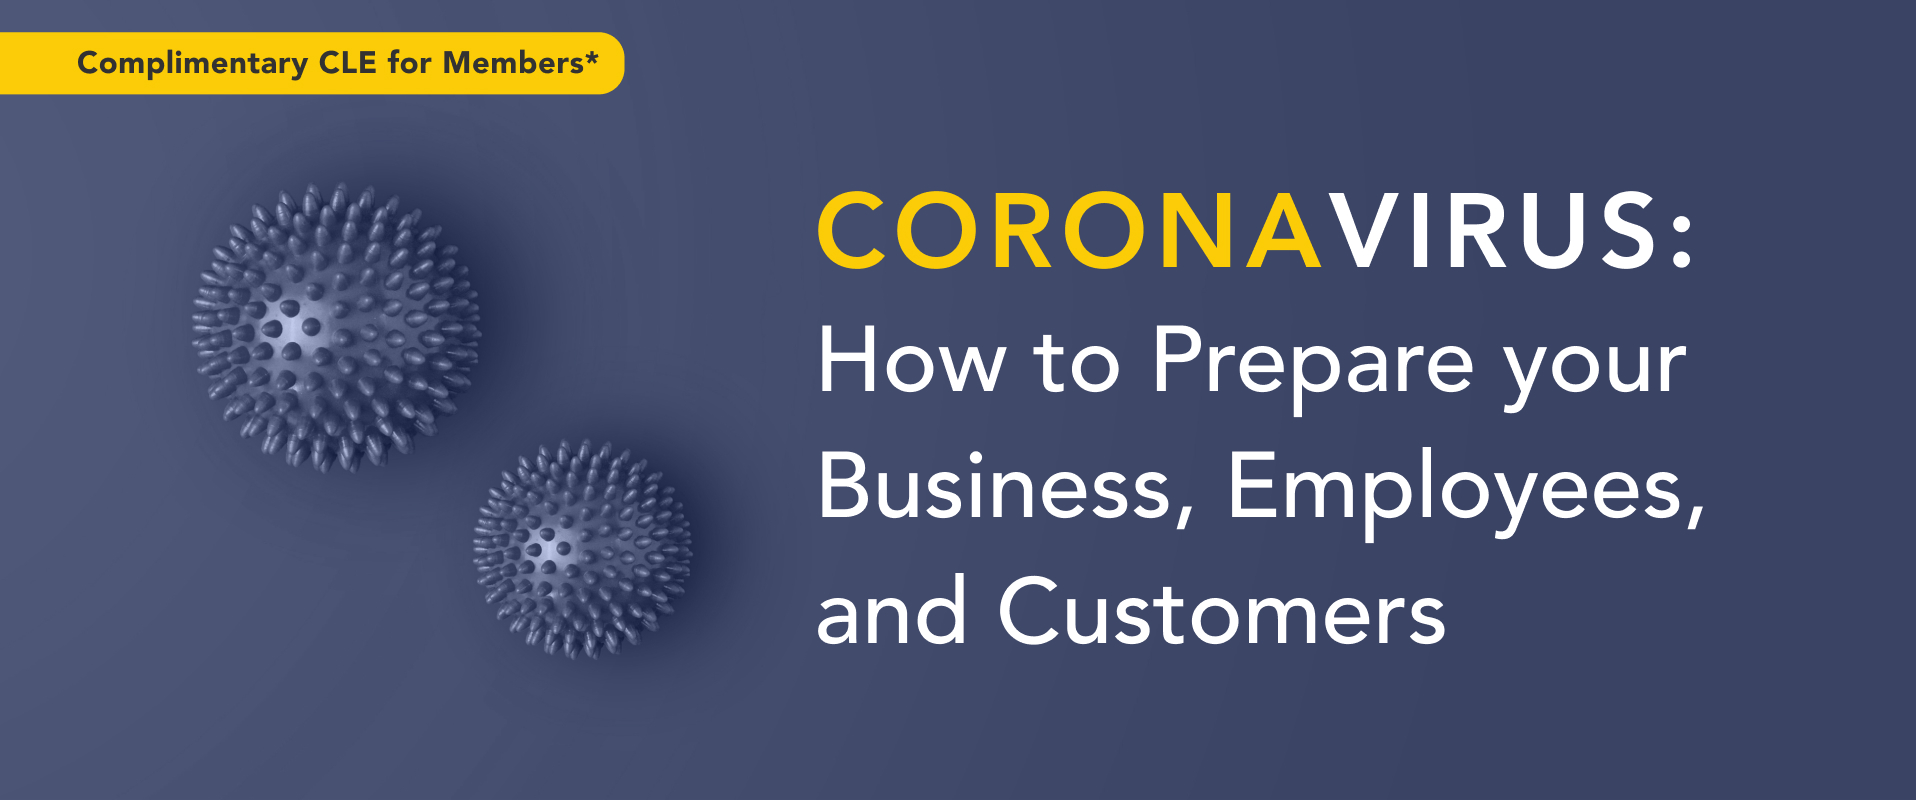 FREE WEBEVENT: Coronavirus: How to Prepare your Business, Employees, and Customers 3-16-20